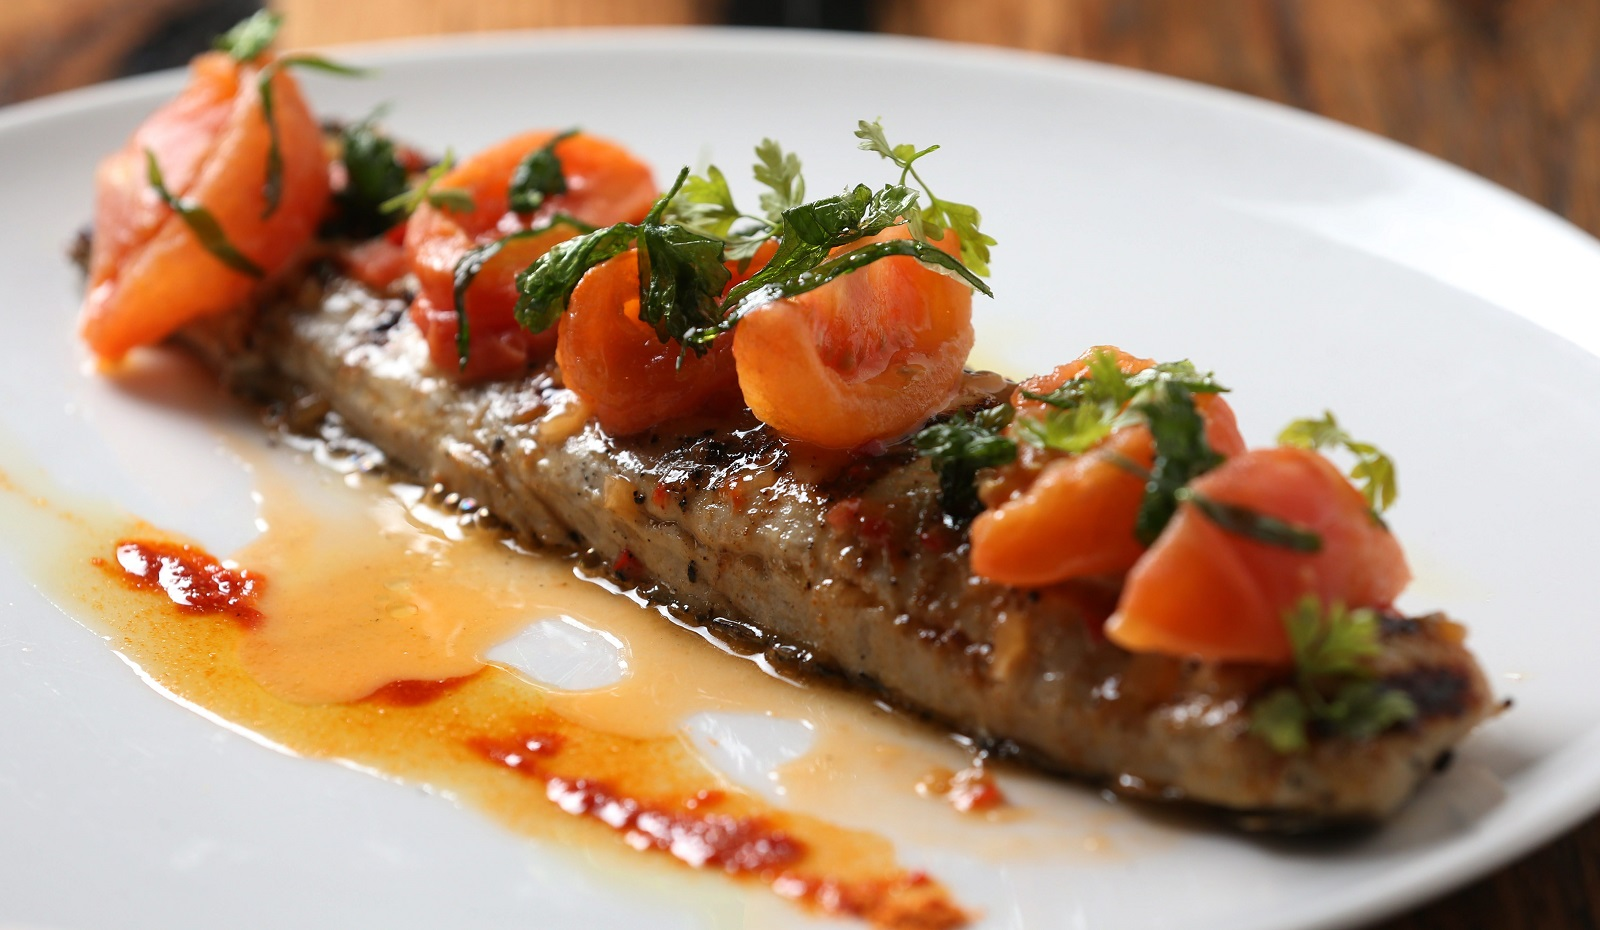 Toutant's wood-grilled red drum fish is among Andrew Galarneau's picks for this outside-the-box fish feature. (Sharon Cantillon/Buffalo News)